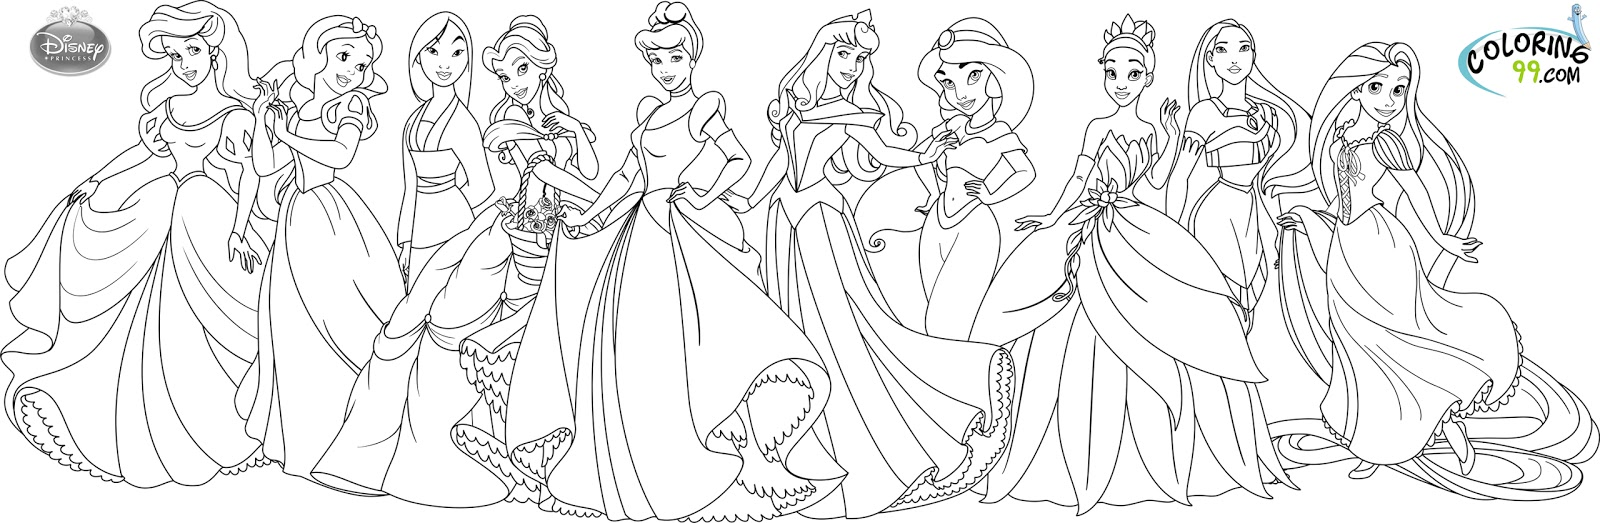 Disney Princess Coloring Pages Minister Coloring Coloring Sheets Of Princesses